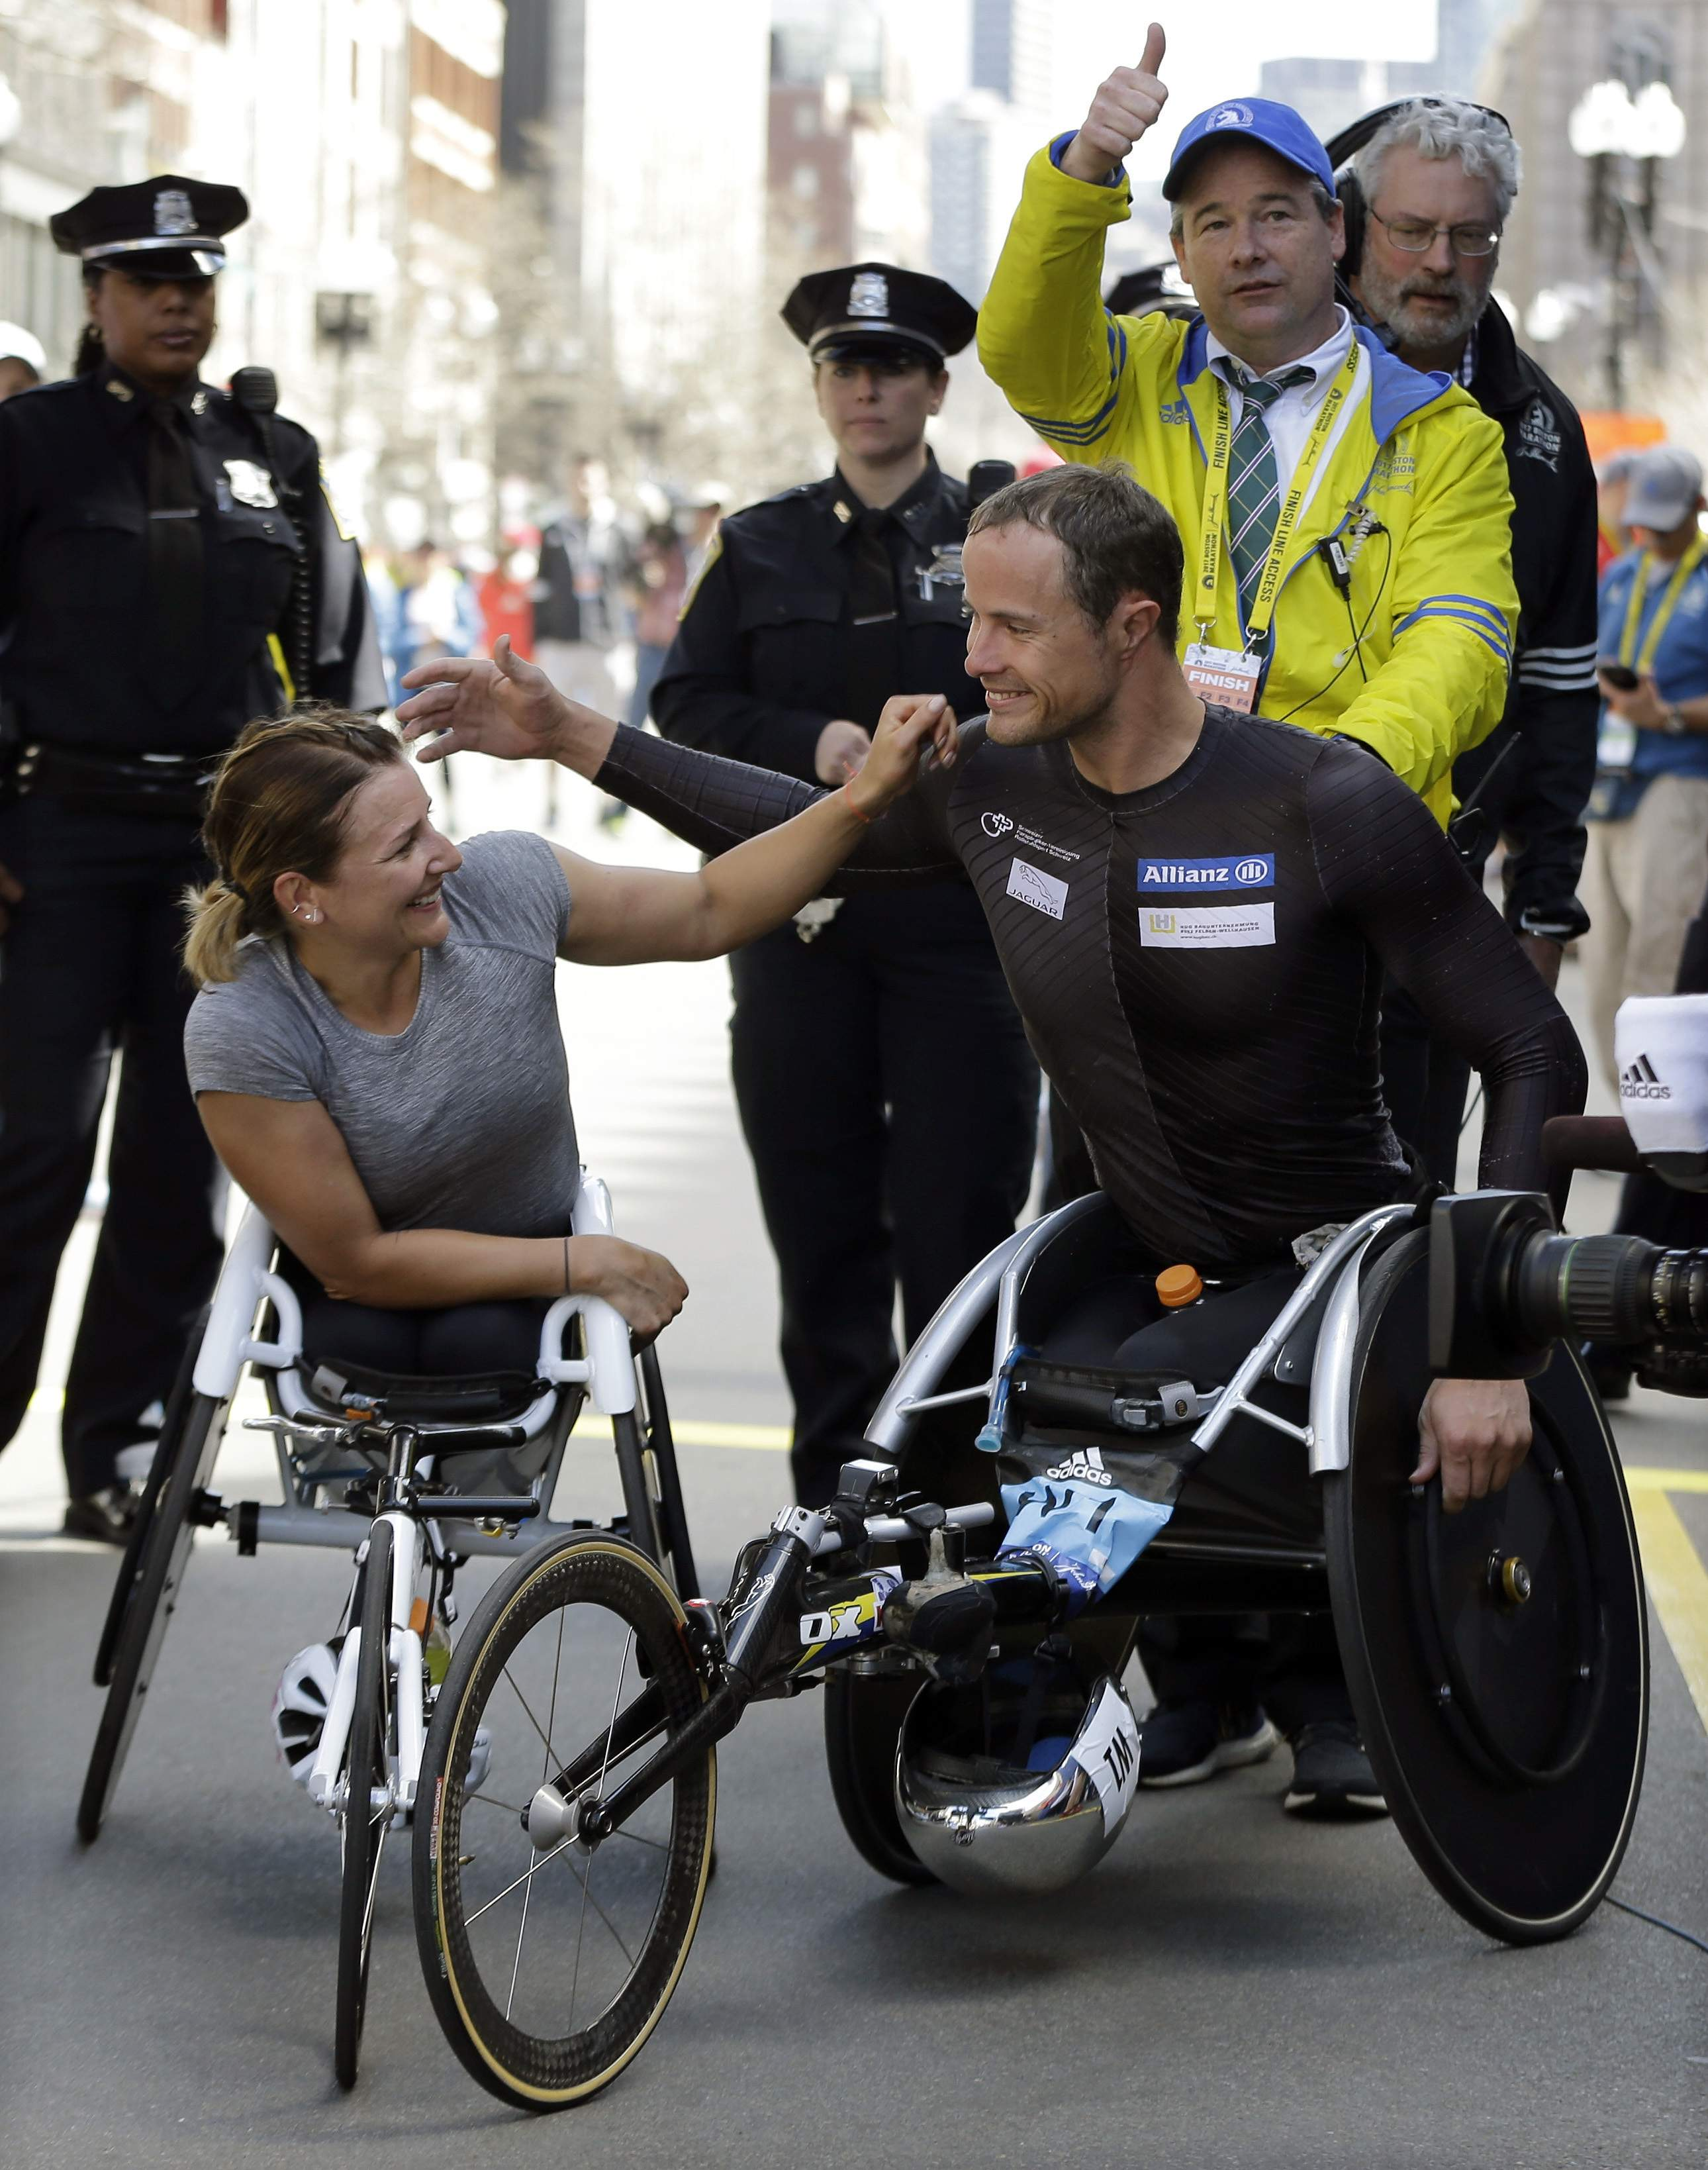 Wheelchair division winners Manuela Schar, left, and Marcel Hug, both of Switzerland, celebrate their wins in the 121st Boston Marathon on Monday, April 17, 2017, in Boston. THE ASSOCIATED PRESS